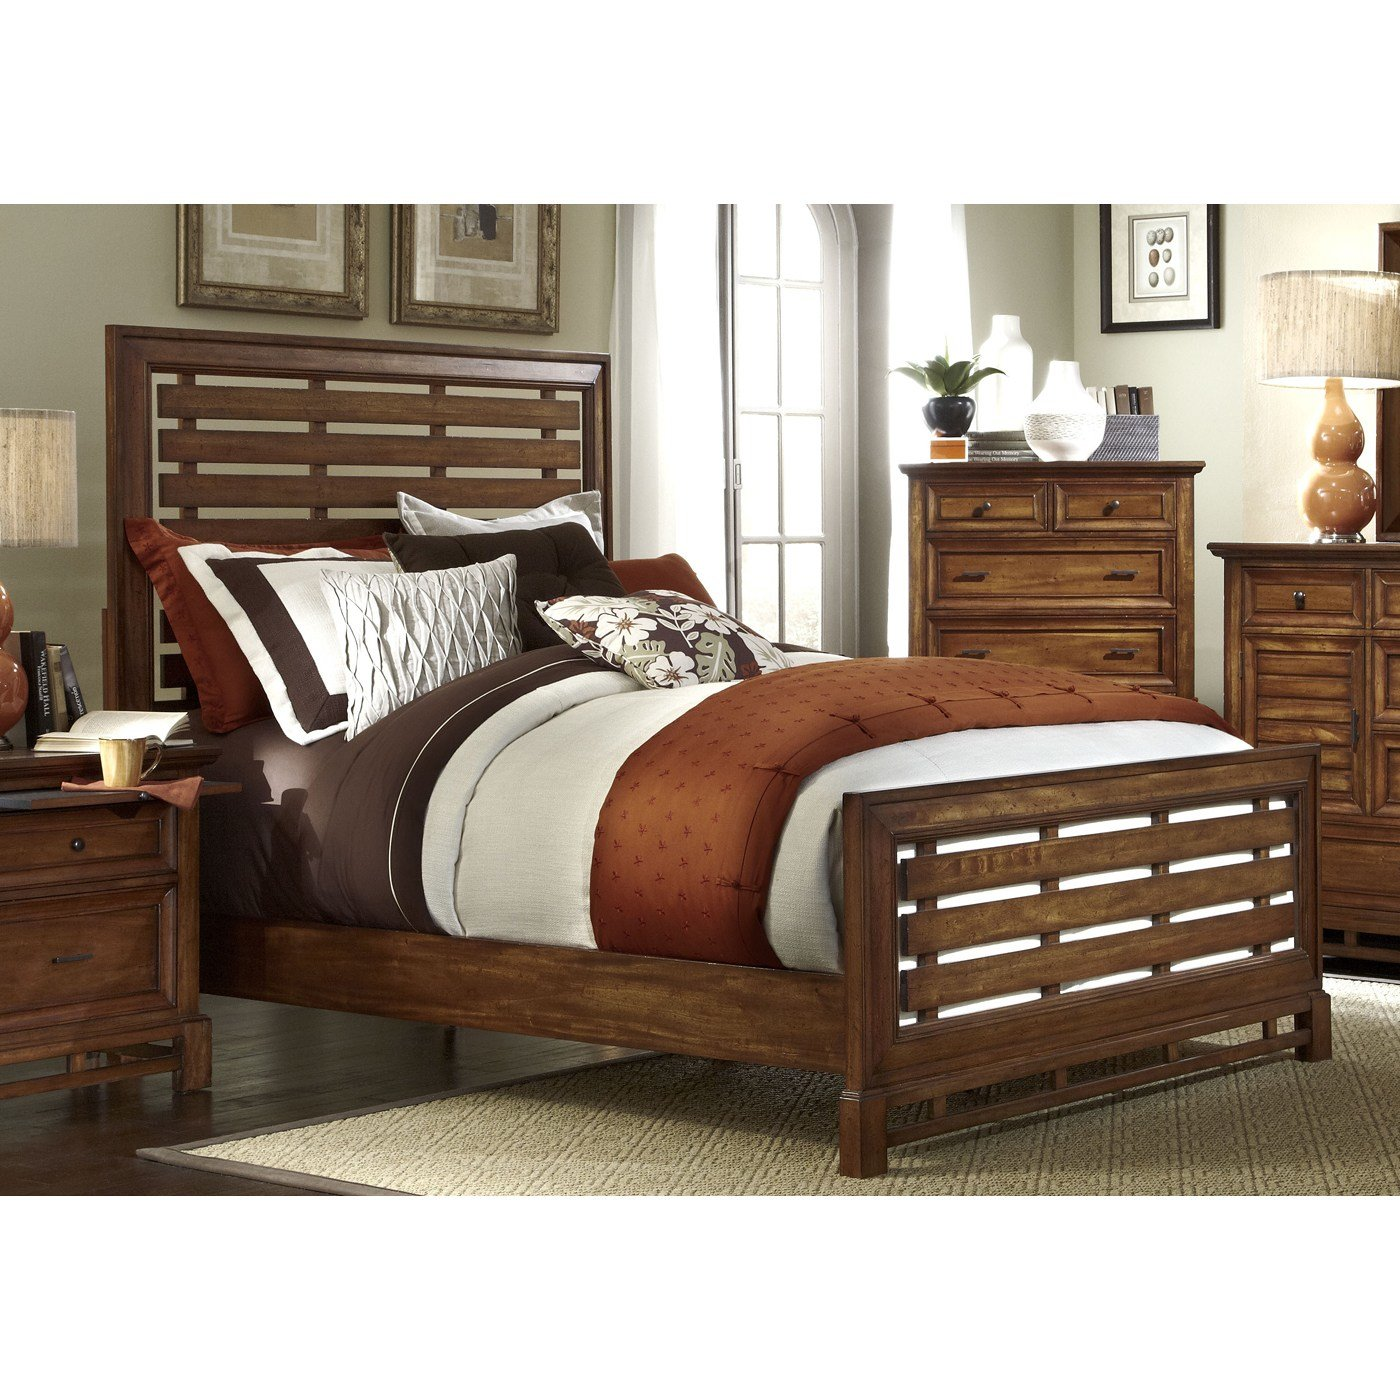 Best Progressive Furniture Catalina Slat Bed Atg Stores With Pictures